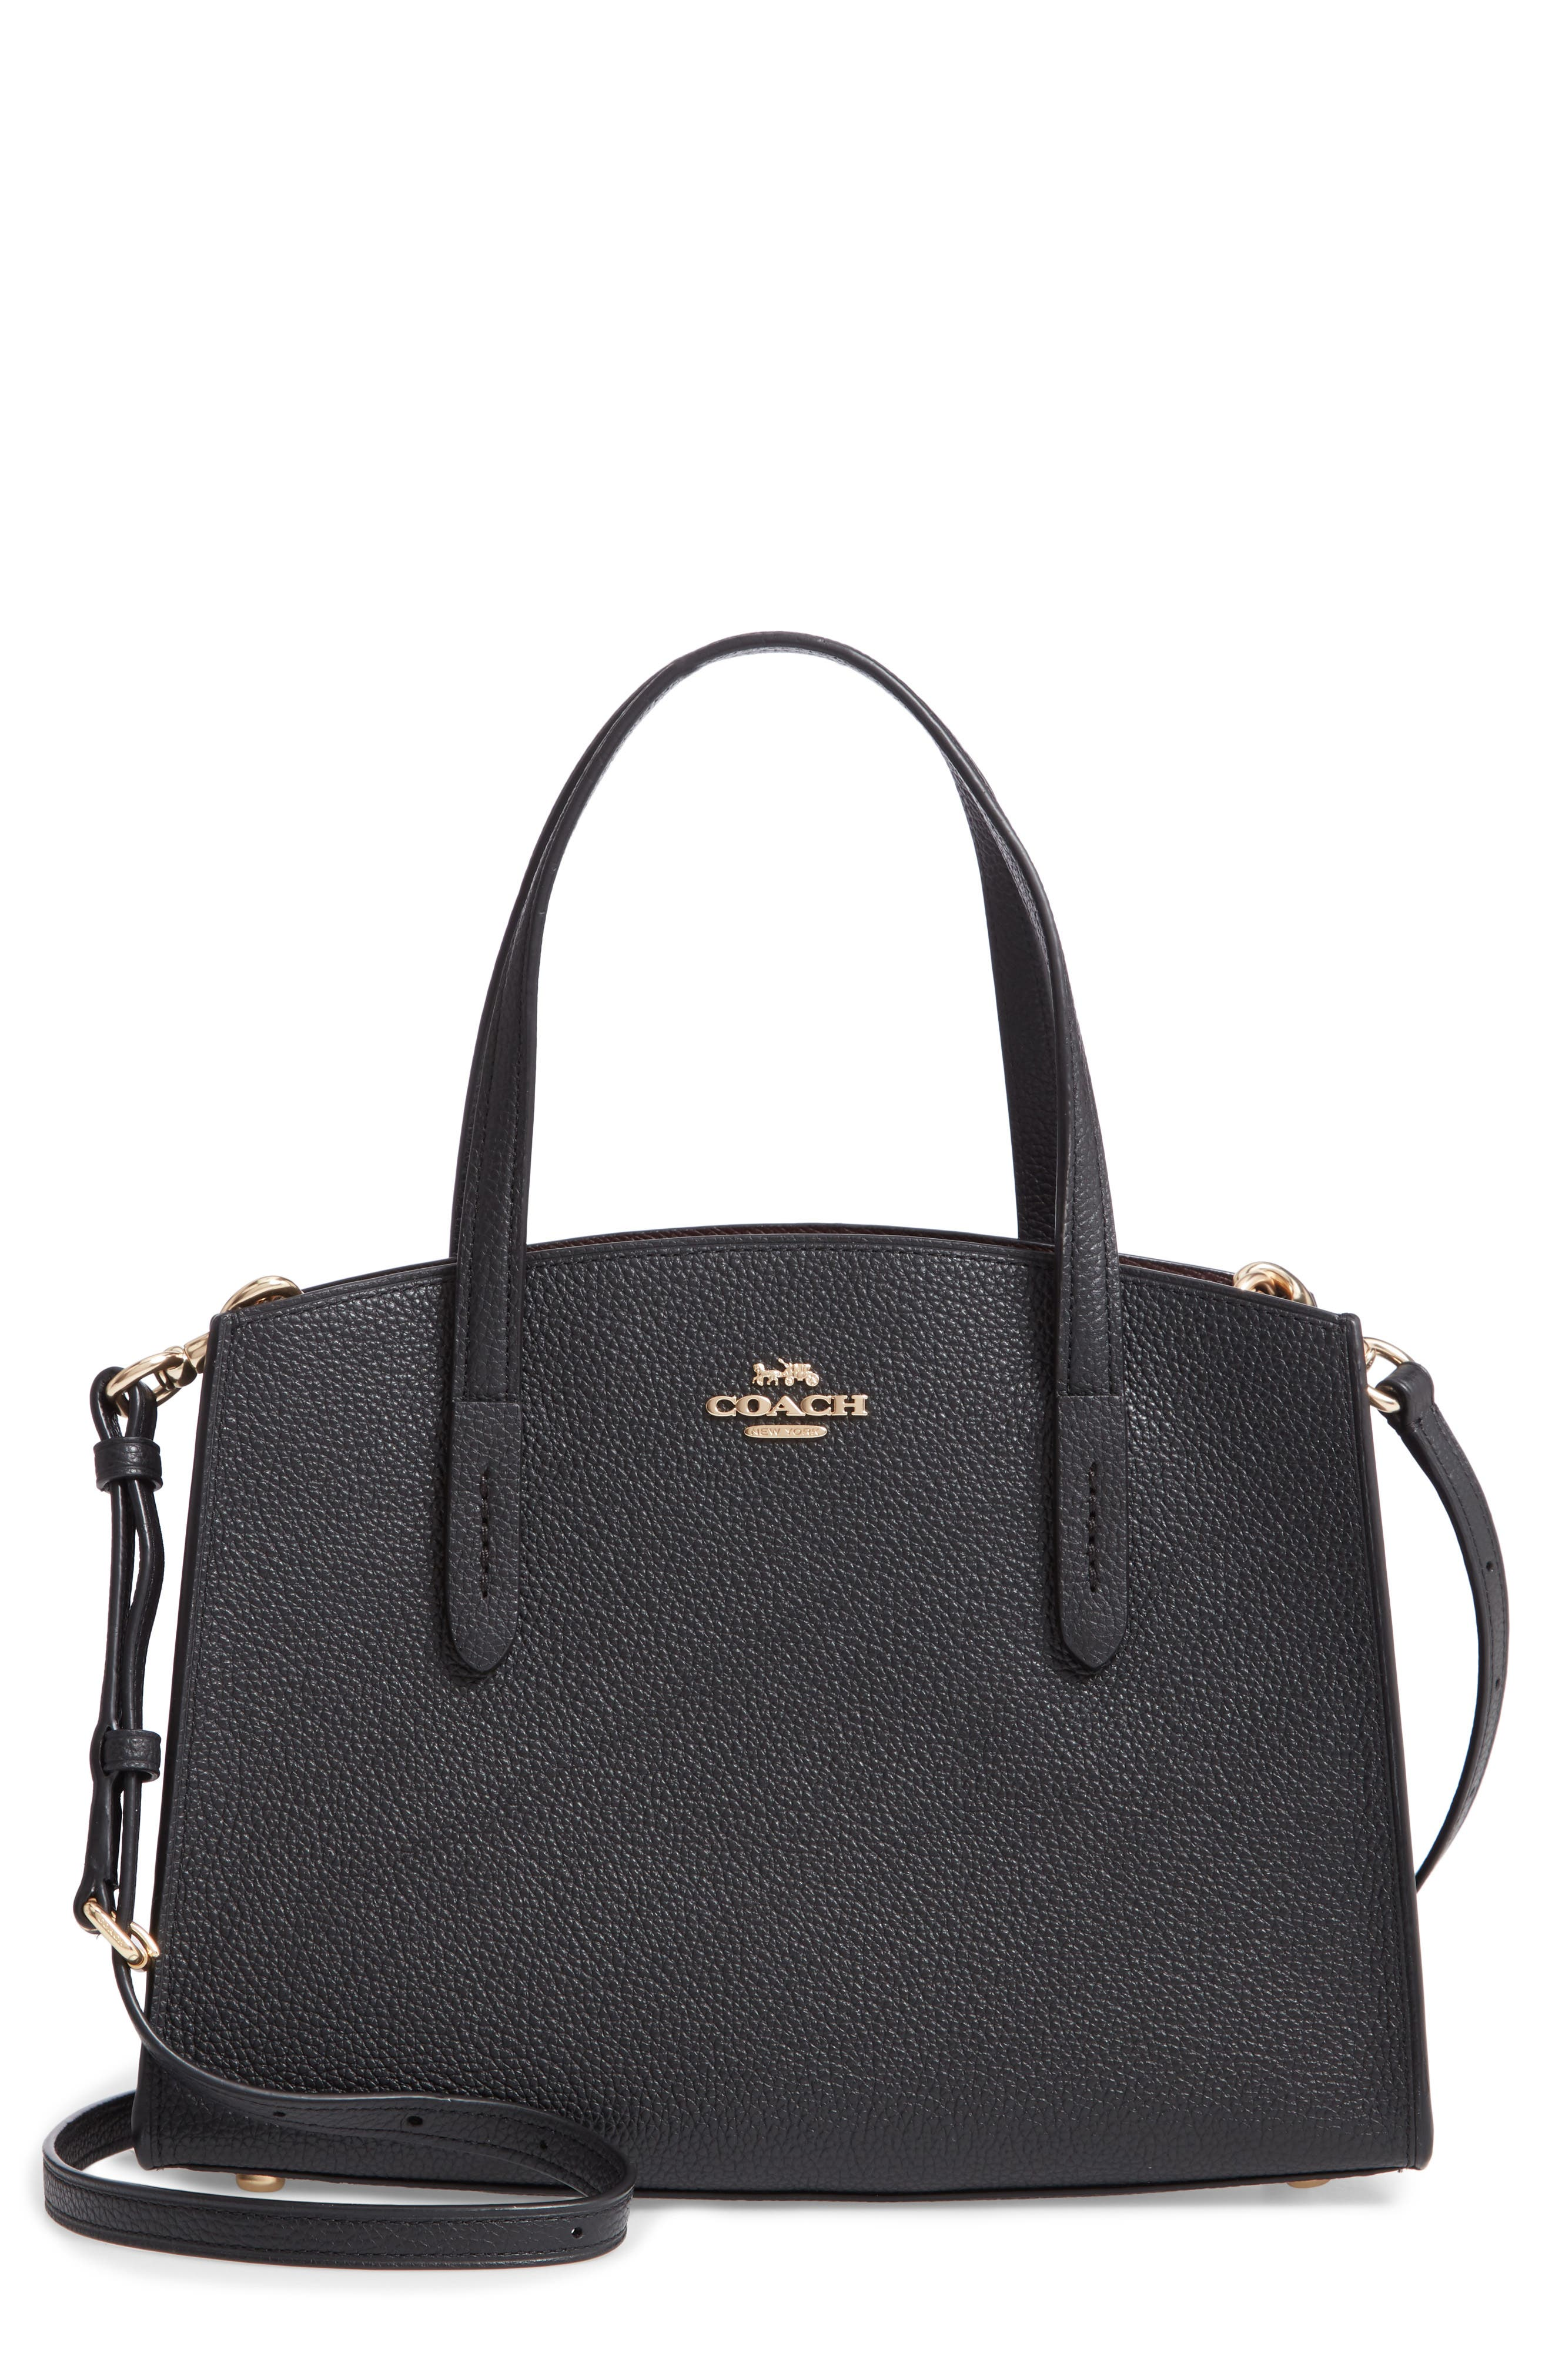 COACH, Charlie Leather Tote, Main thumbnail 1, color, BLACK